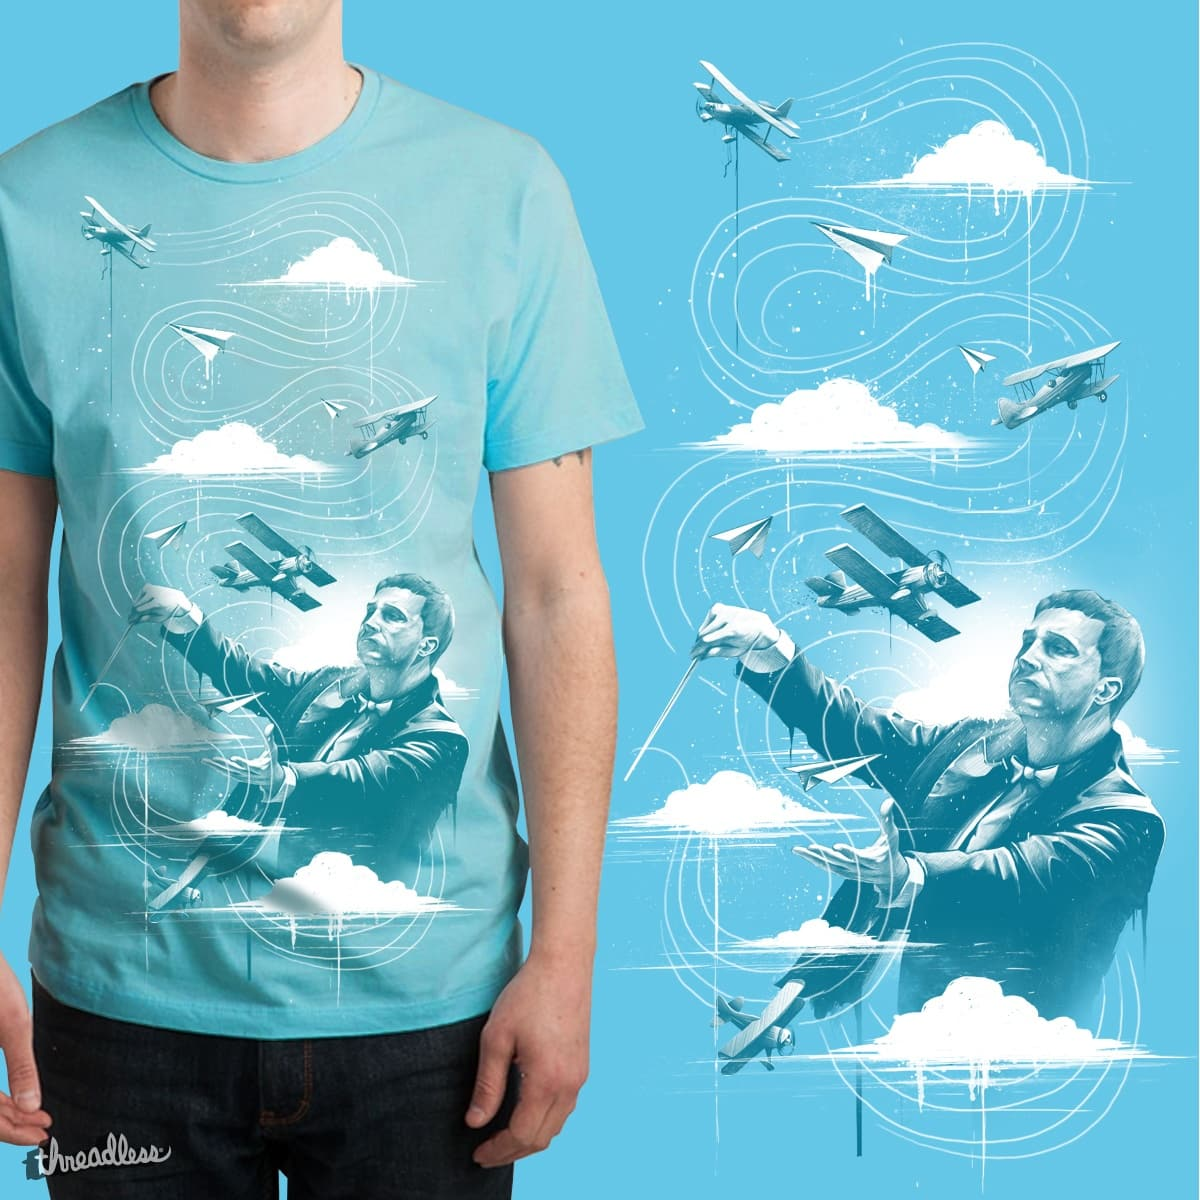 Ciel Symphonie by CUBAN0 on Threadless